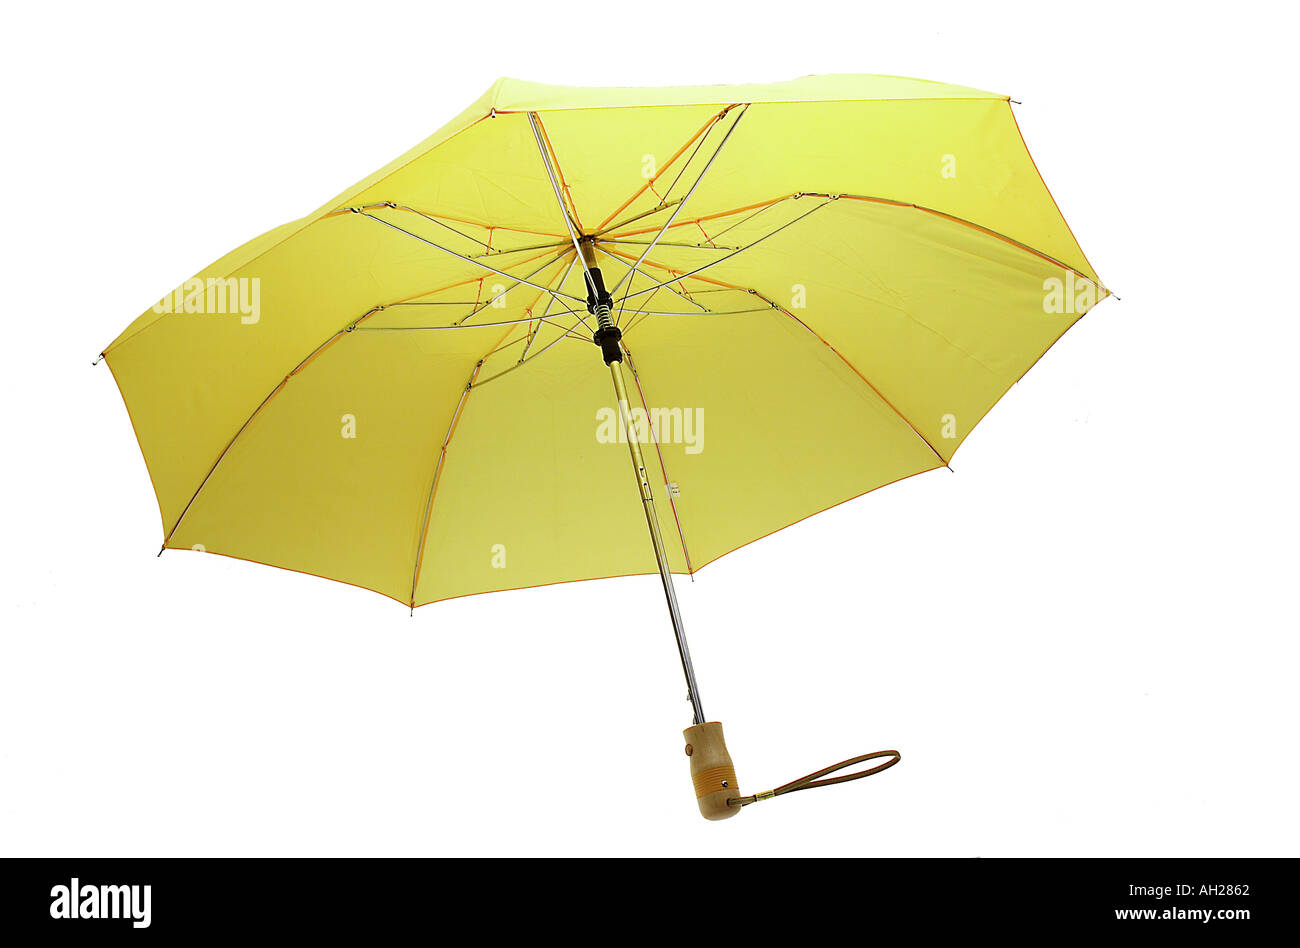 Yellow umbrella silhouetted on a white background - Stock Image